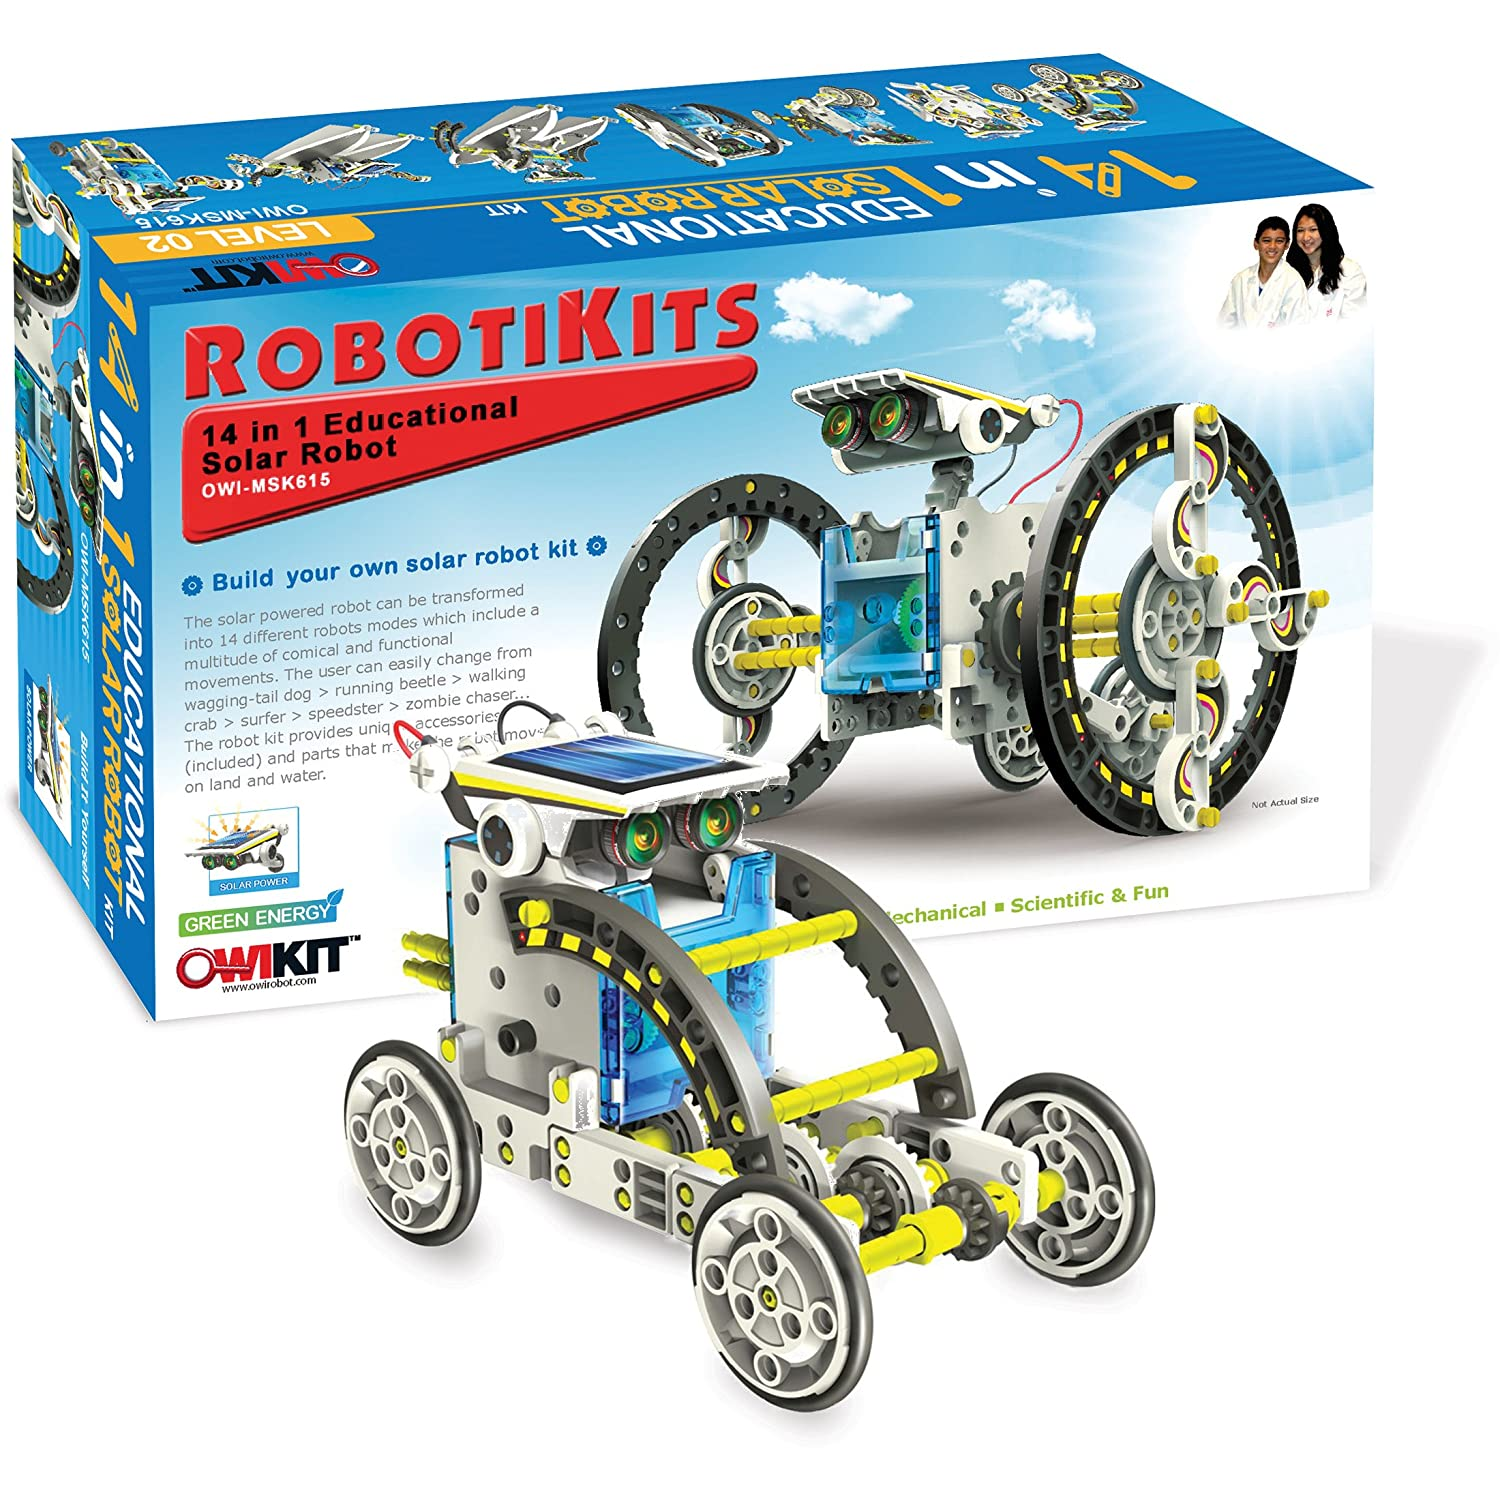 Toys For Boys 10 14 : What to buy a year old boy for christmas cool toys